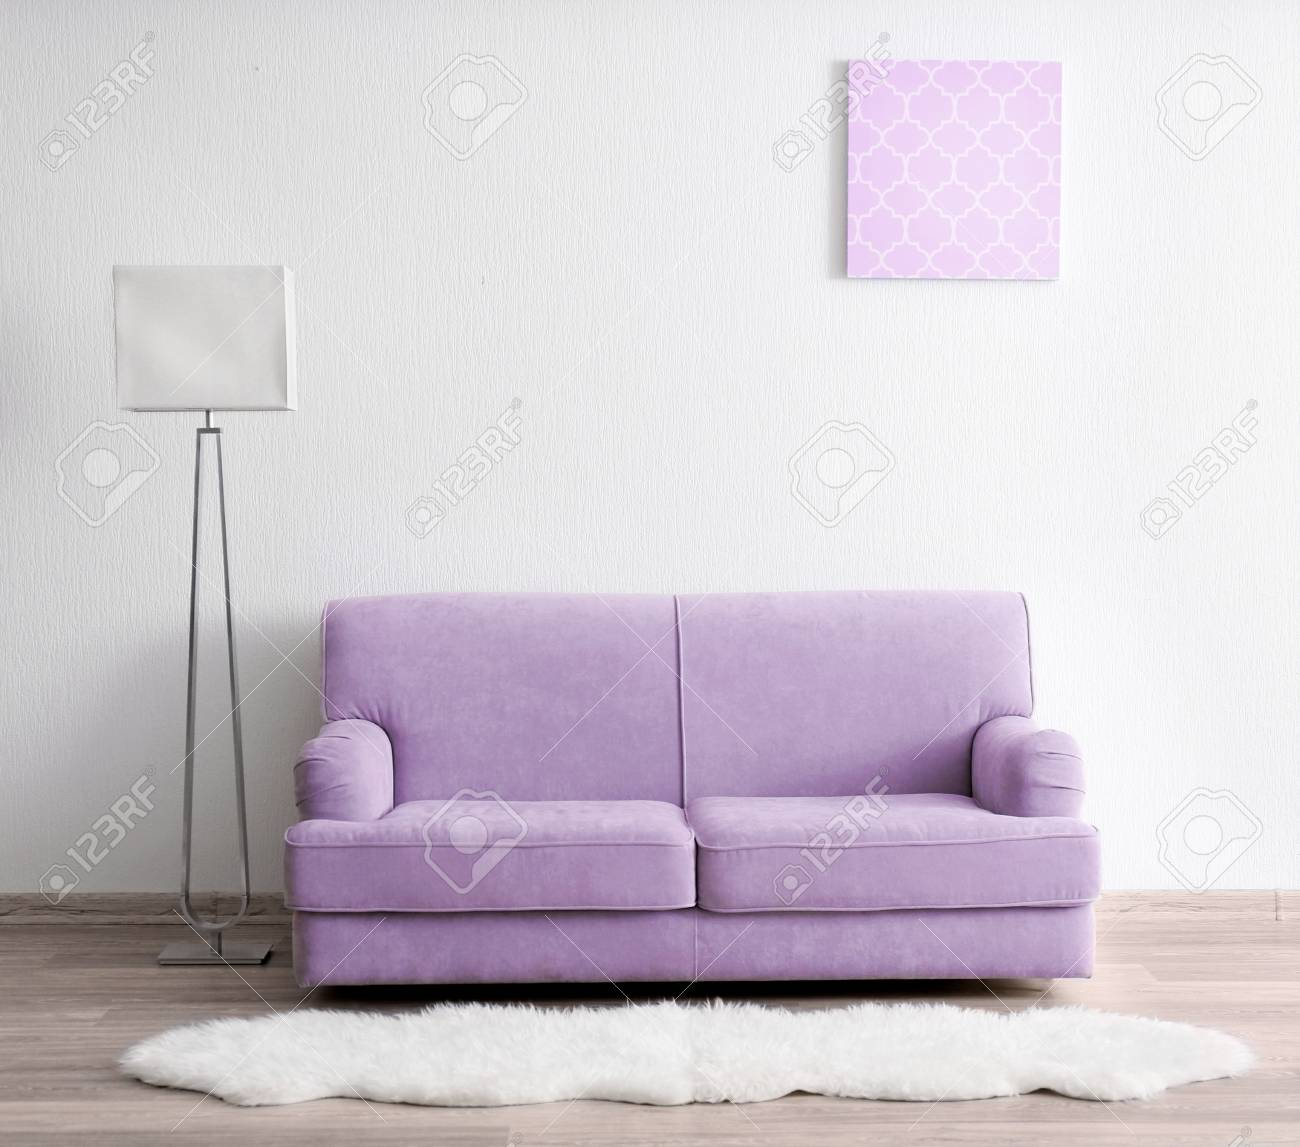 Couch Lila Lilac Color Accent In Modern Interior. Comfortable Couch And.. Stock Photo, Picture And Royalty Free Image. Image 91533479.